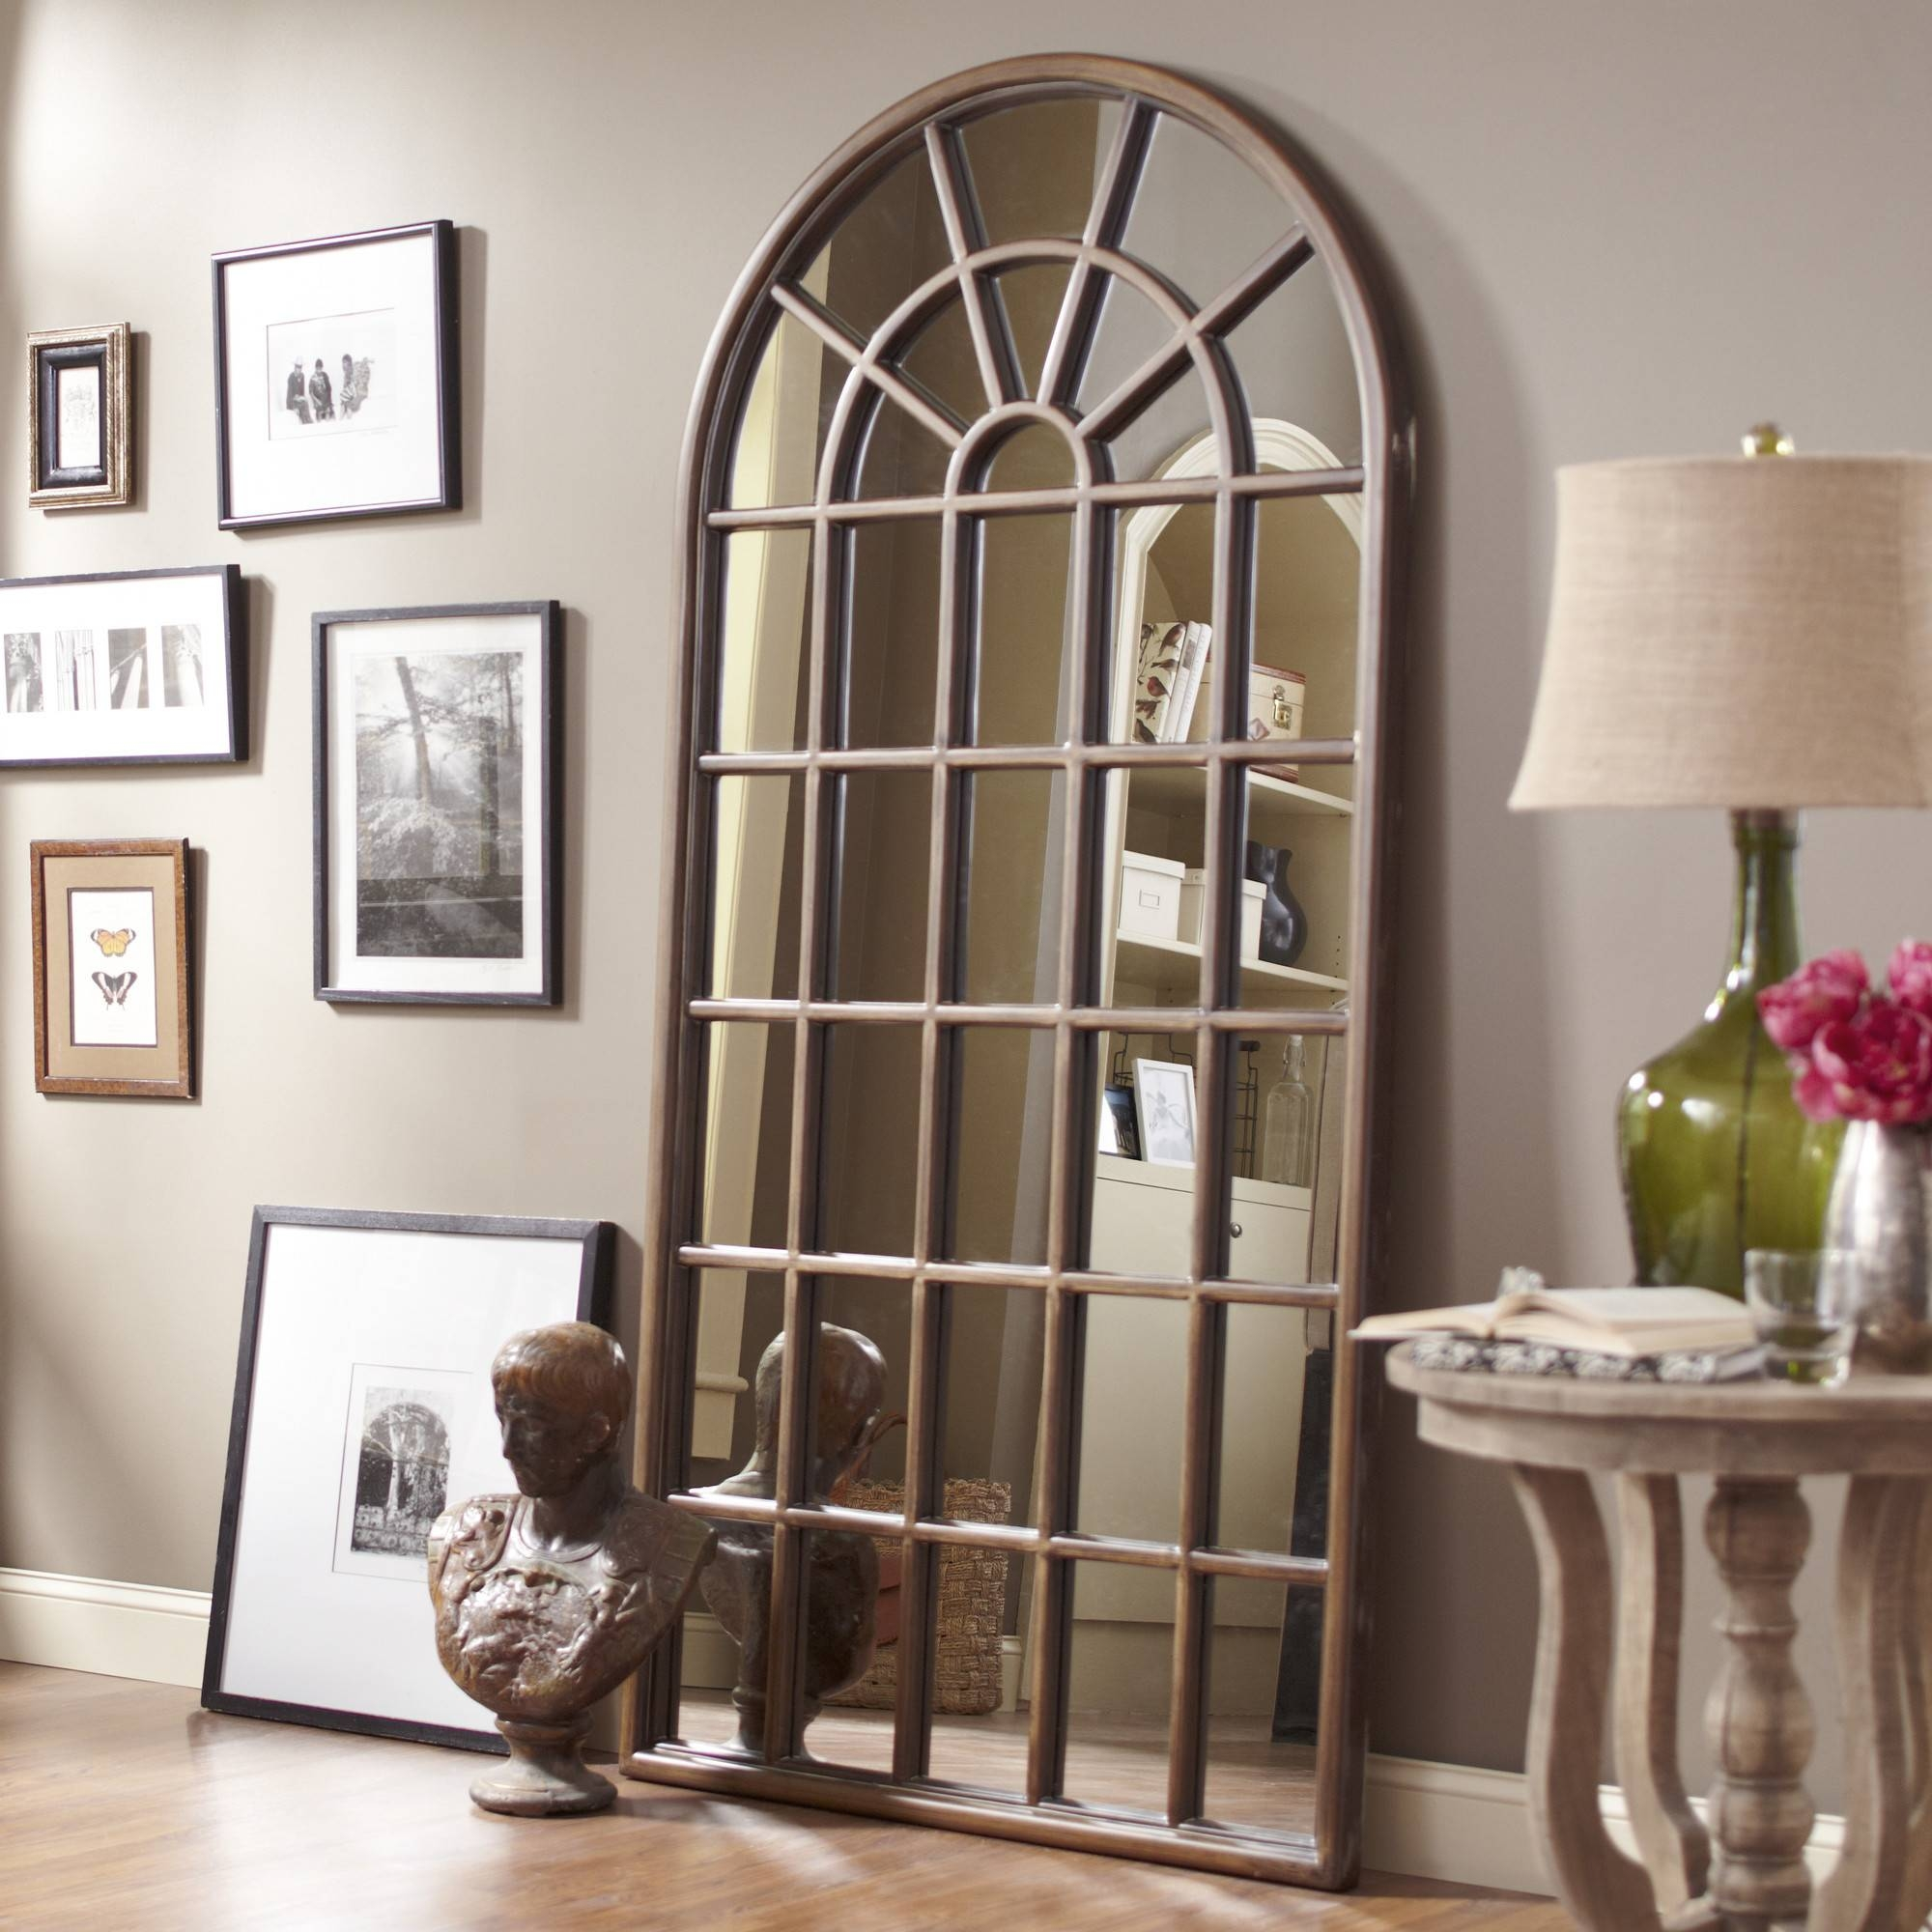 Old Window Into Brilliant Diy Mirror That Will Amaze Everyone with regard to Old Looking Mirrors (Image 13 of 15)